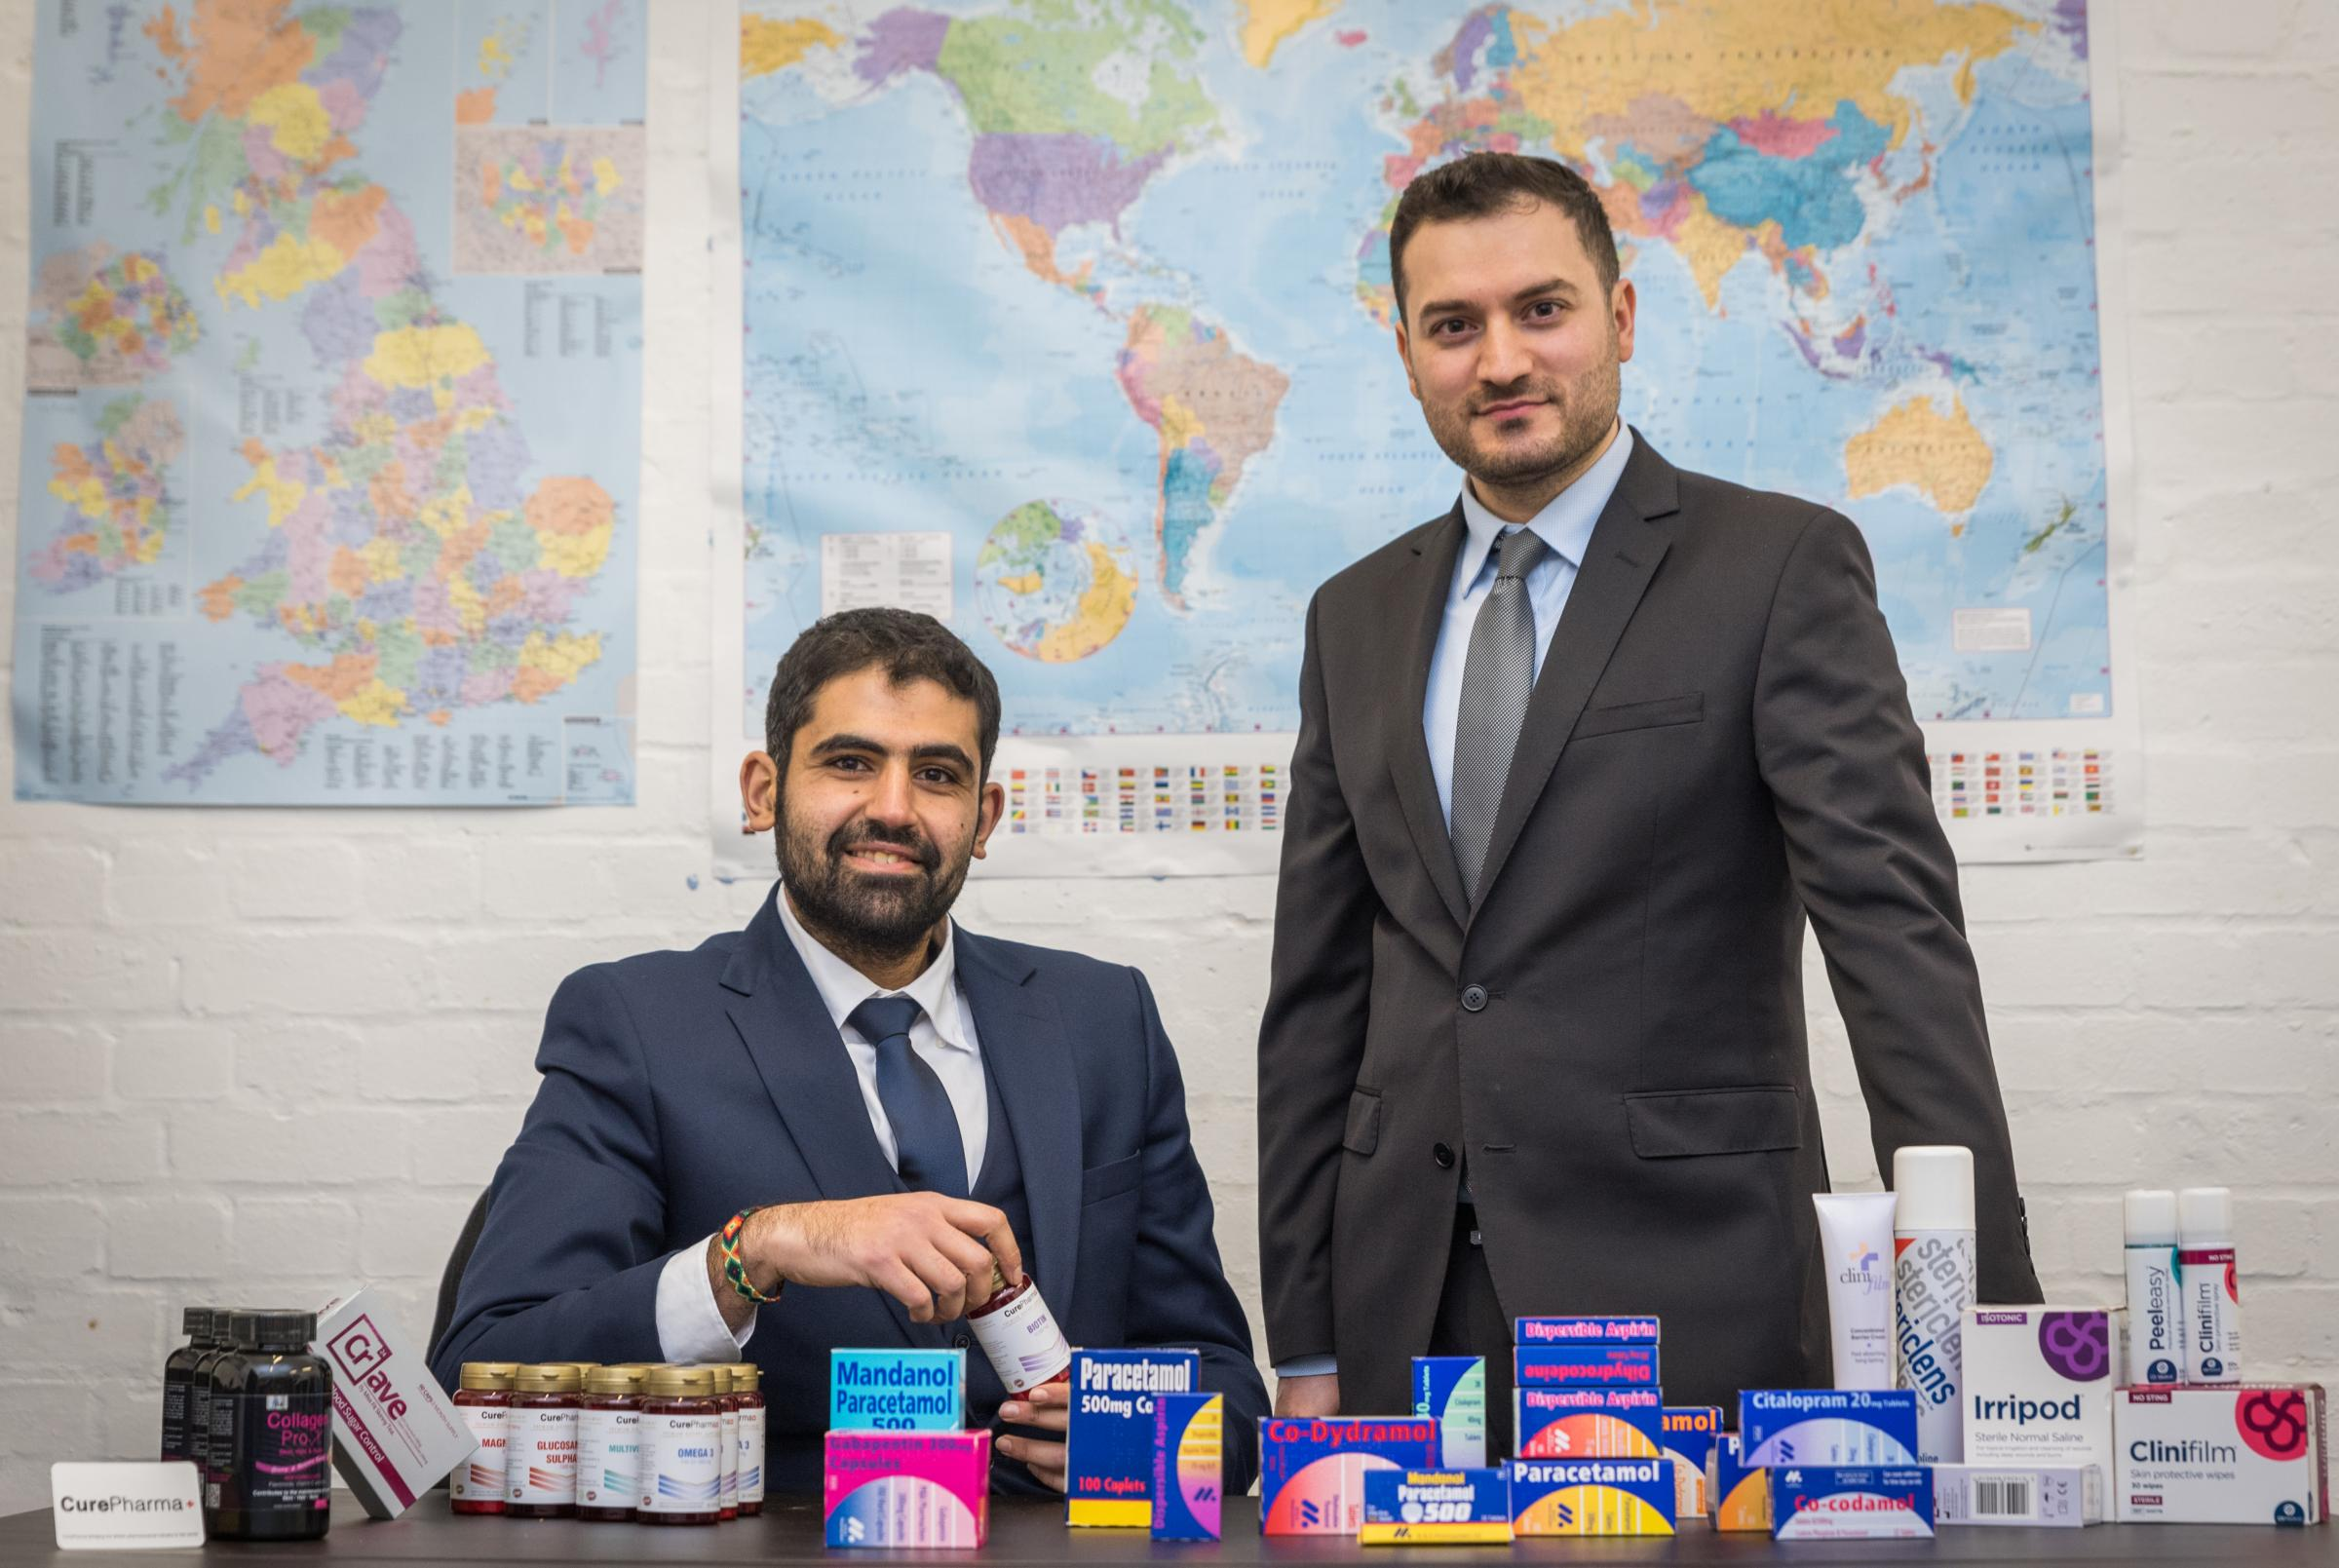 CurePharma founders, director, Mustafa Al-Shalechy (left) and business development manager, Ali Alshamari, who have opened an office in Doha, Qatar, after helping to export £500,000 worth of medicines and pharmaceuticals to The Middle East in 2017.